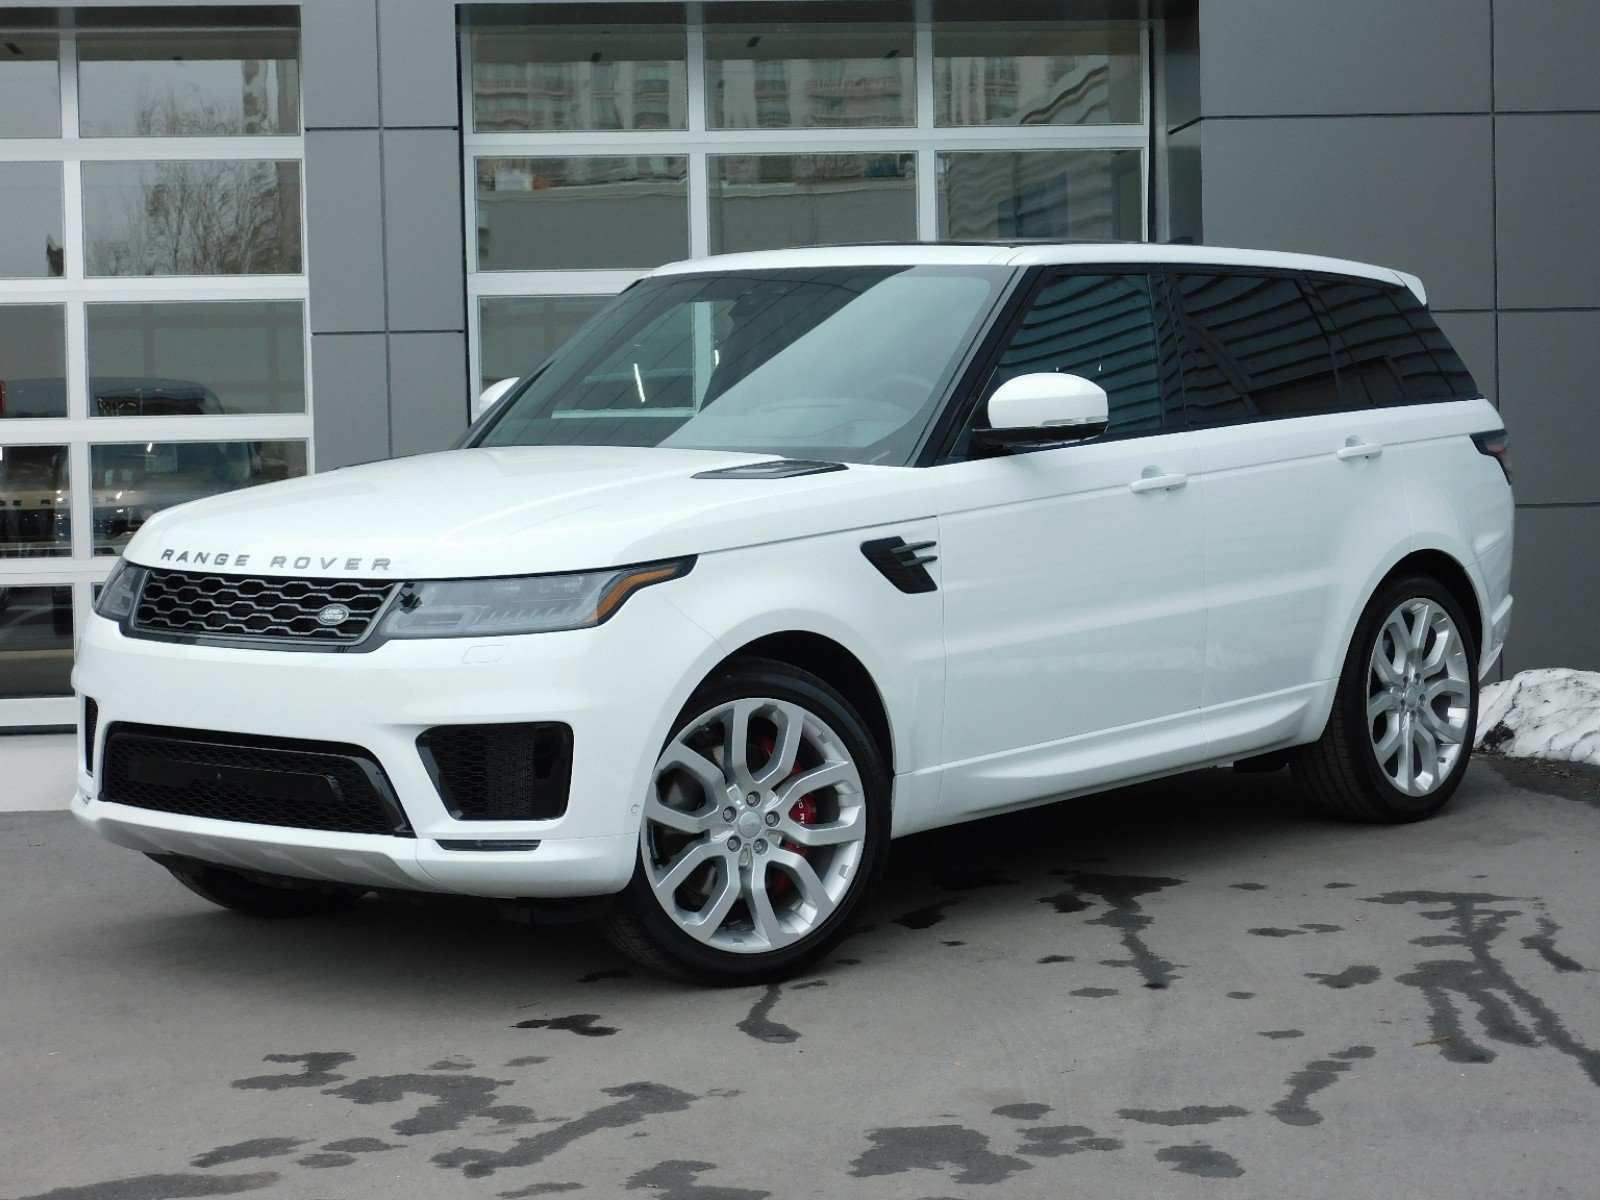 44 New 2019 Range Rover Sport Ratings